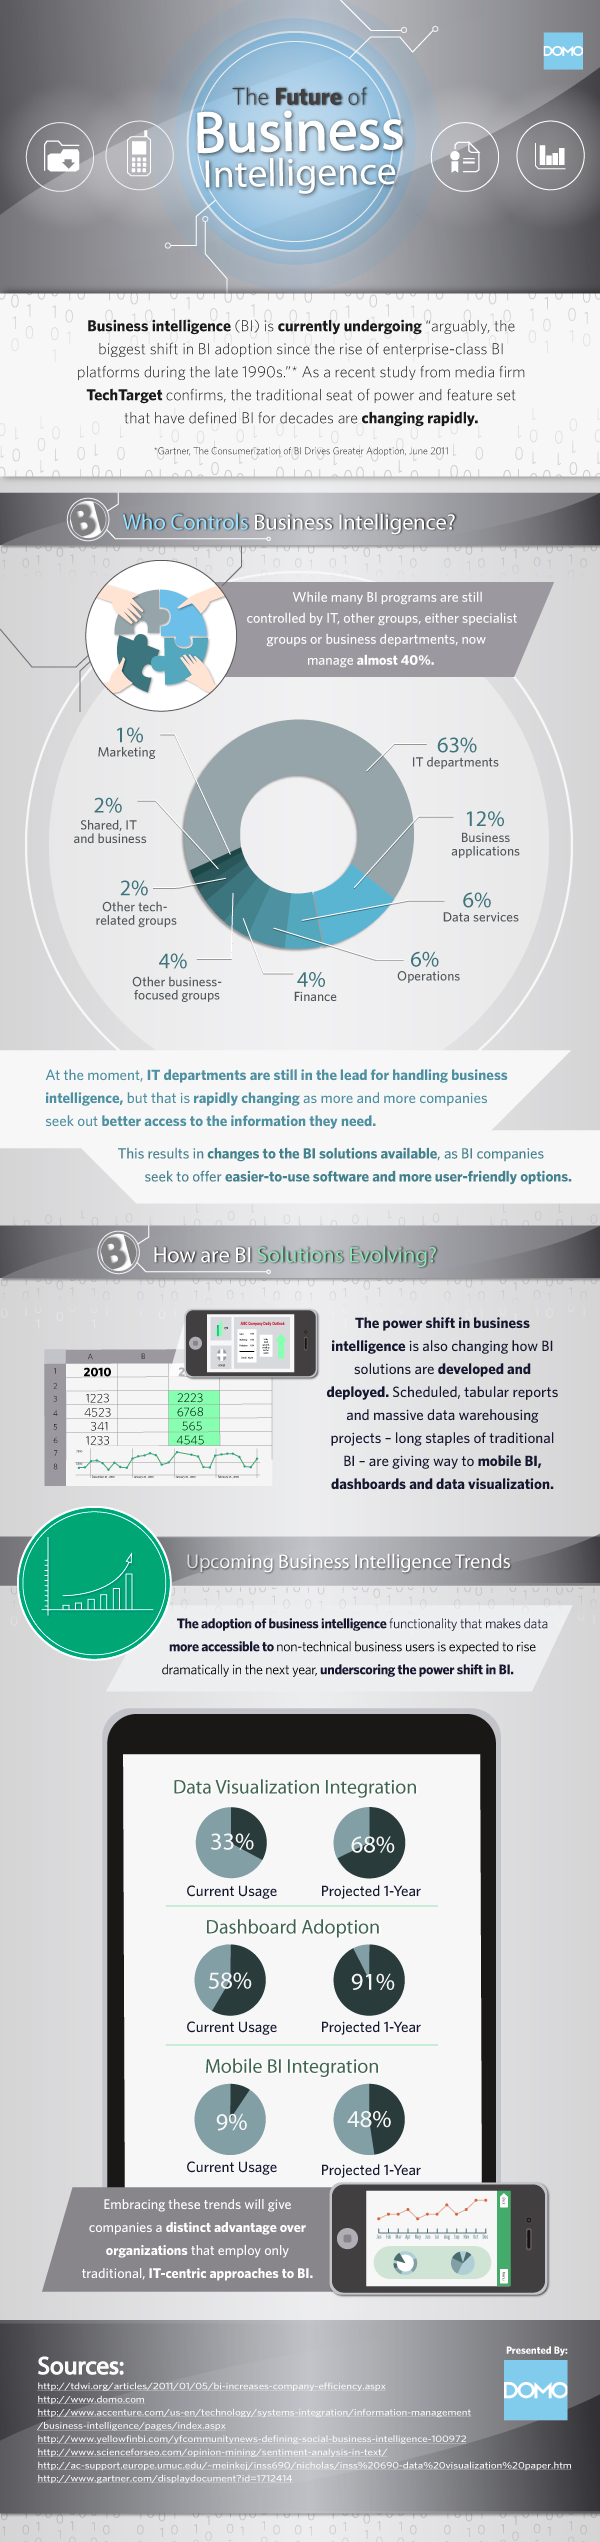 The Future of Business Intelligence: Infographic